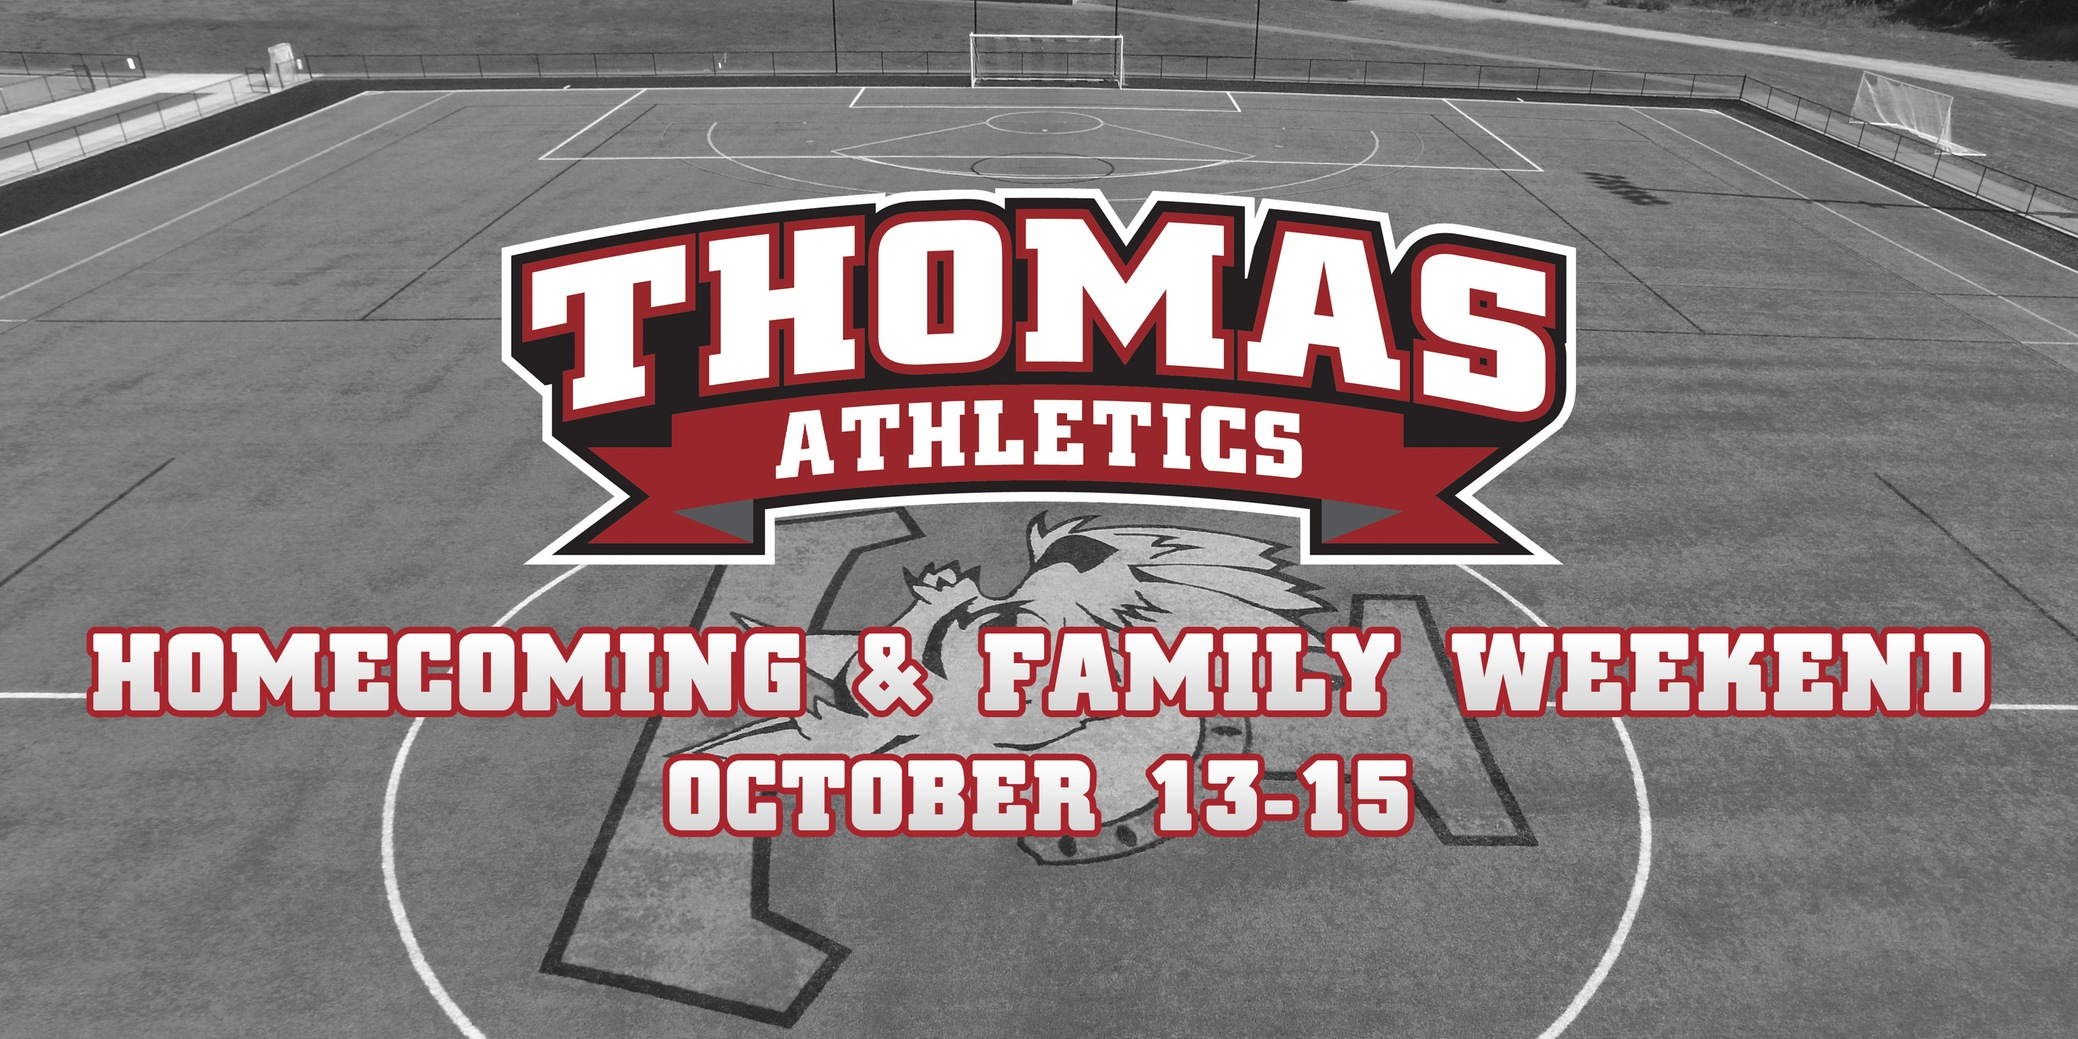 Varsity and Alumni Games Scheduled for Homecoming and Family Weekend